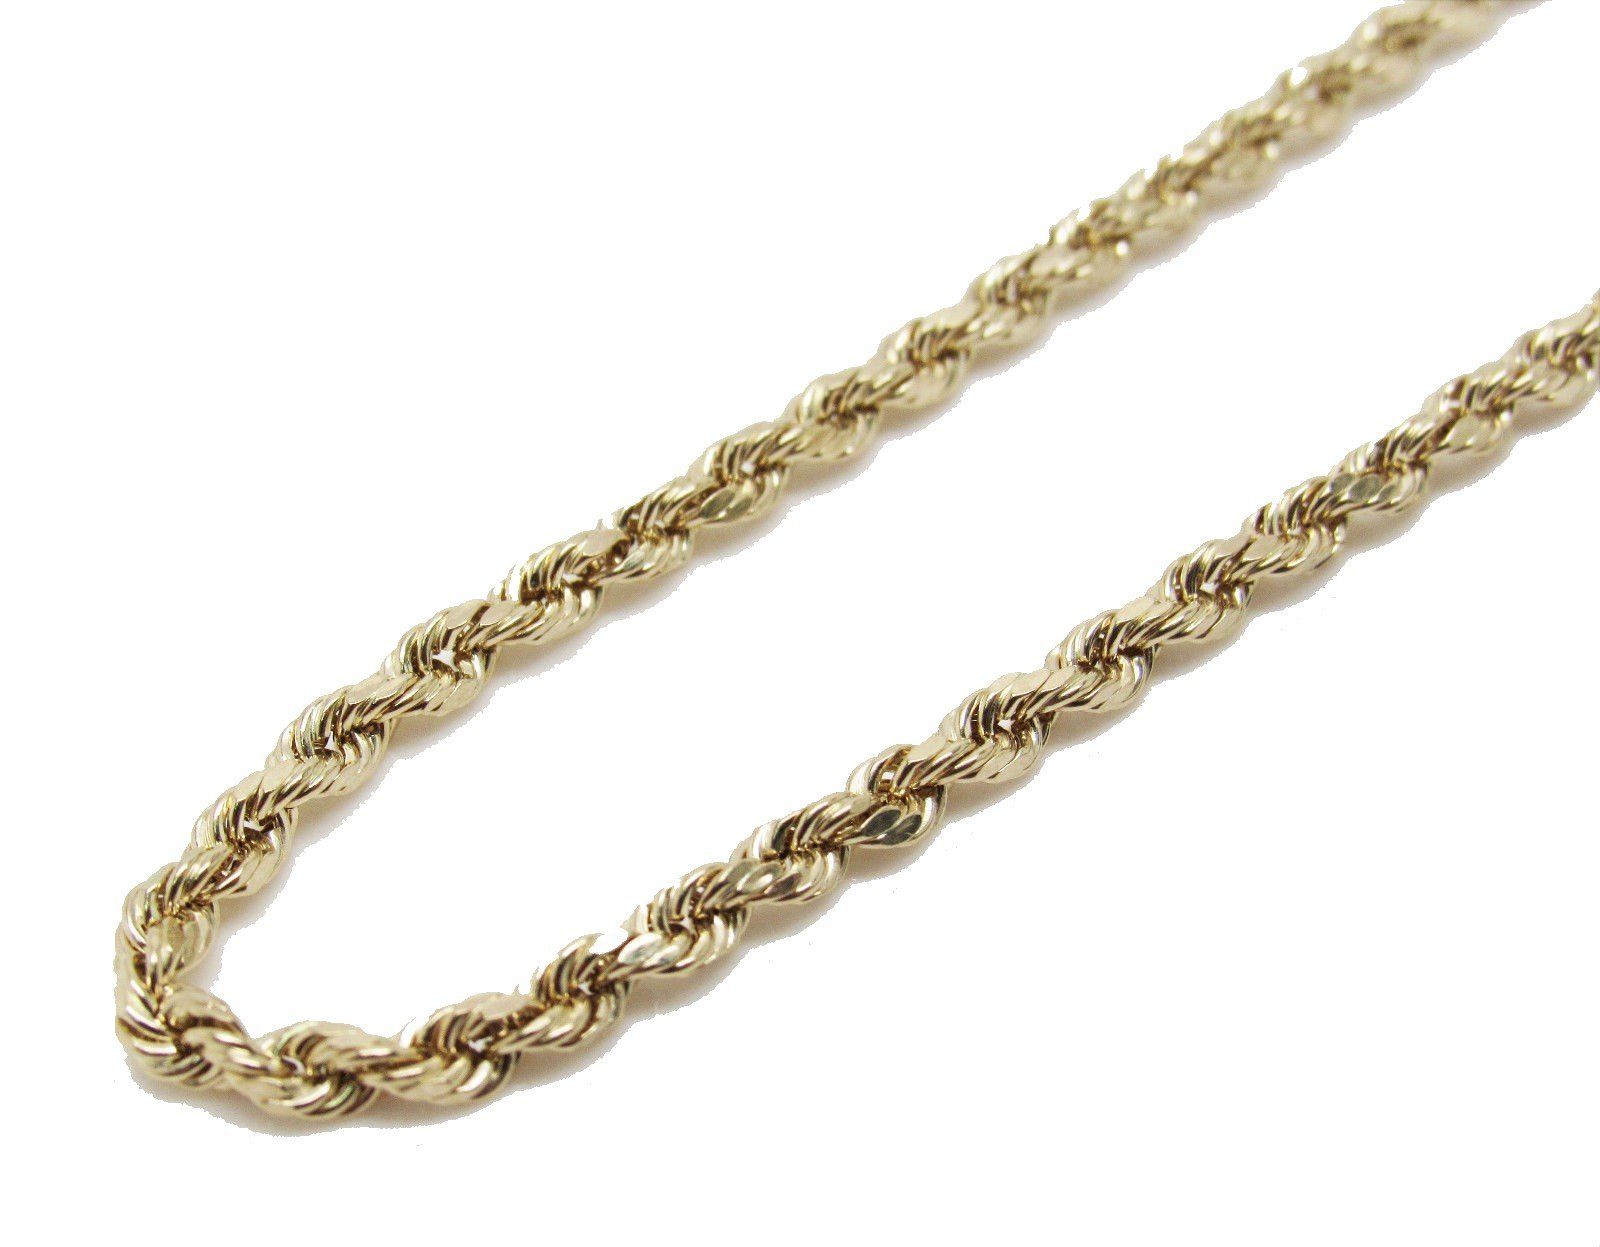 10K Yellow Gold Italian Rope Chain 30'' 3mm wide Hollow 7.4 Grams by Melano Creation (Image #1)